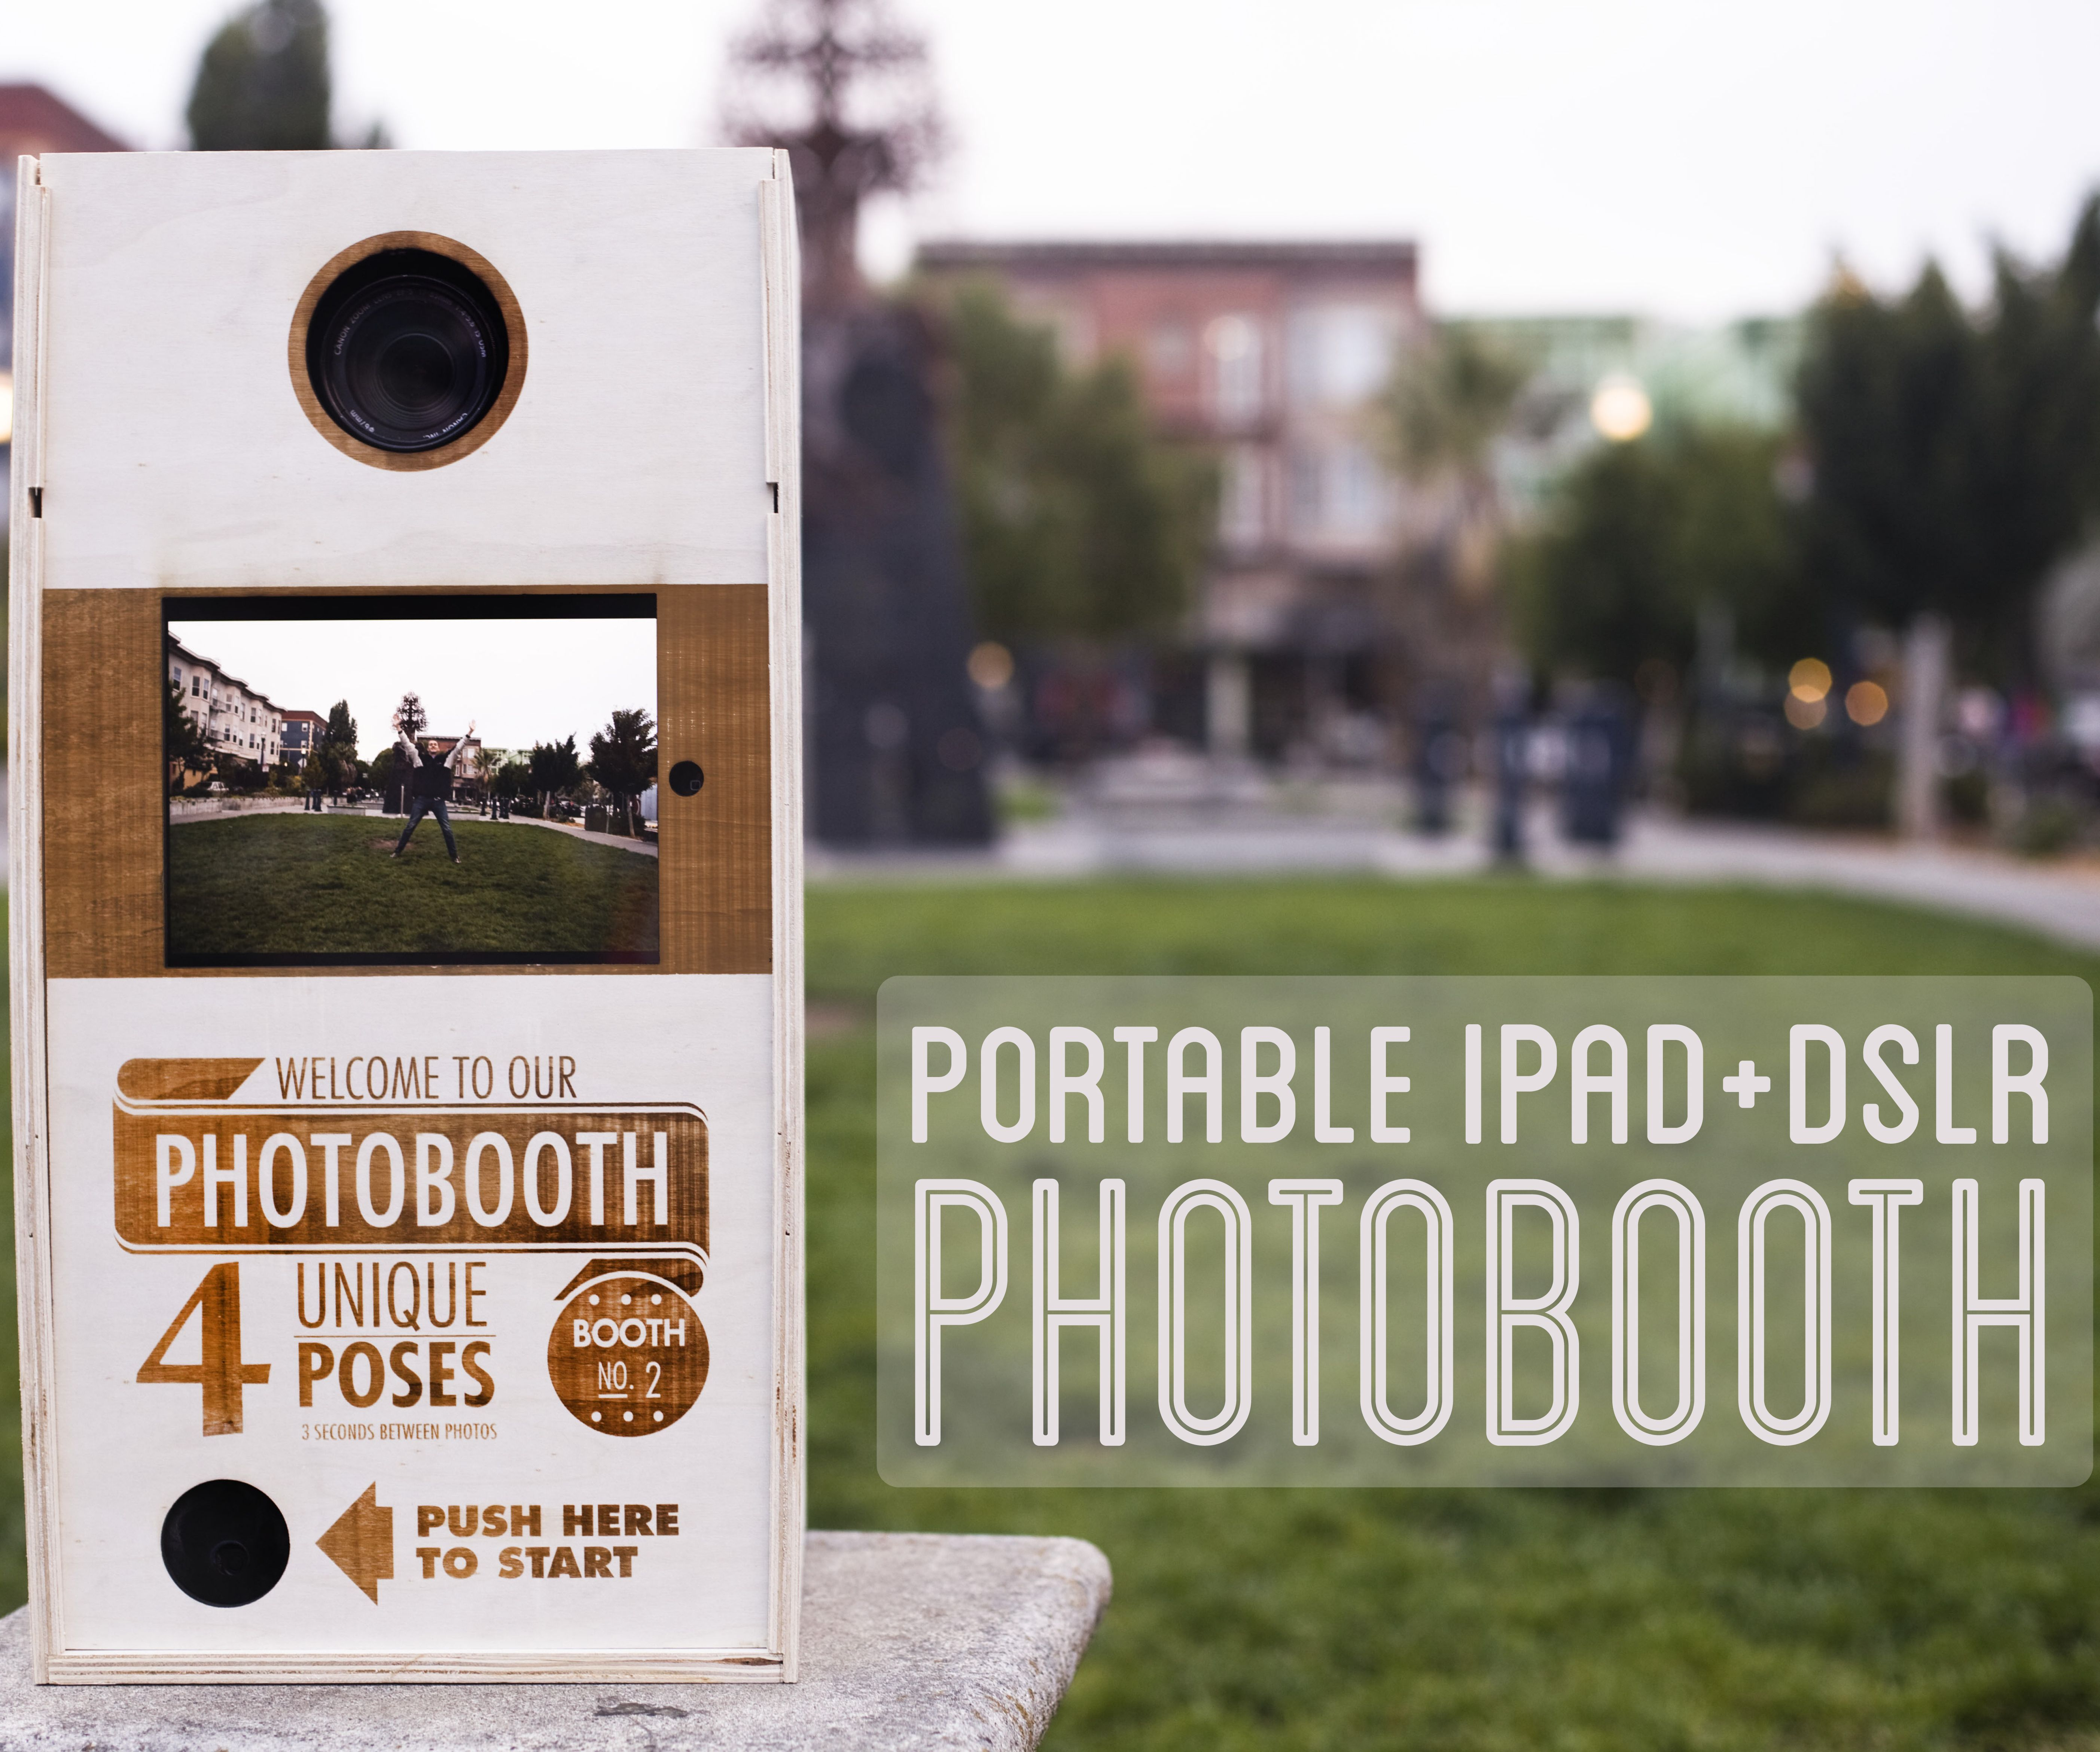 Portable Photobooth (iPad+DSLR)